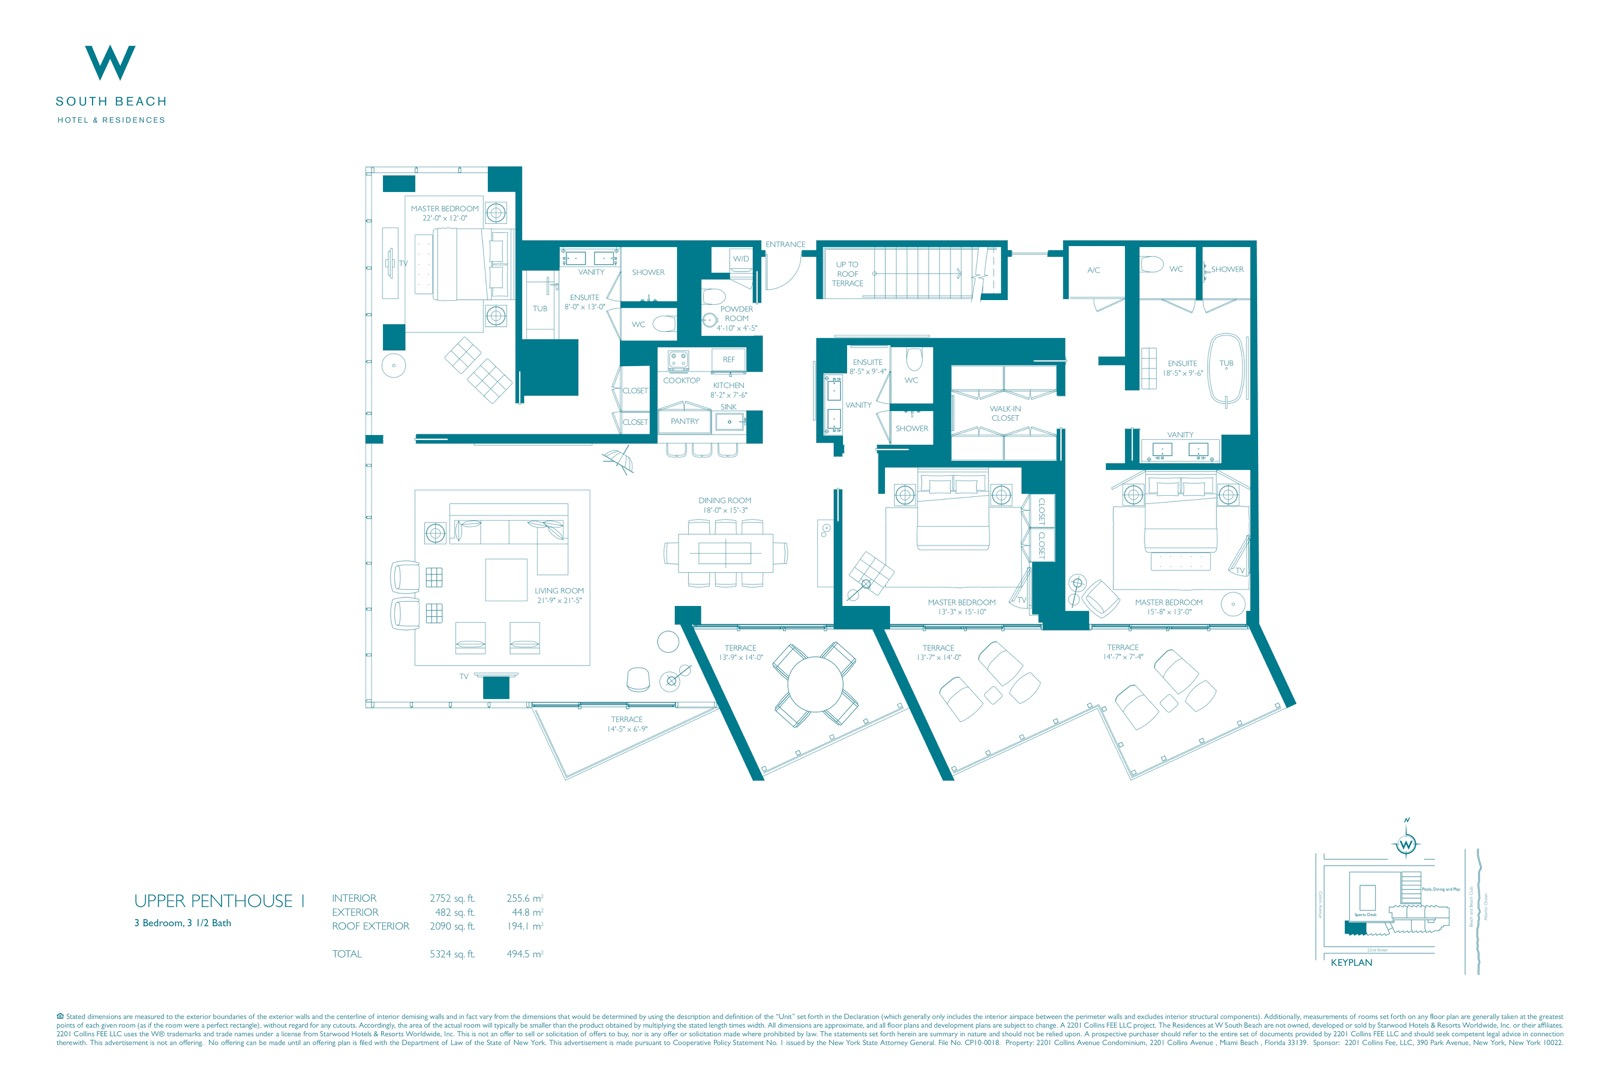 Floor plan image W South Beach Penthouse 1 - 3/3/1  - 6021 sqft image